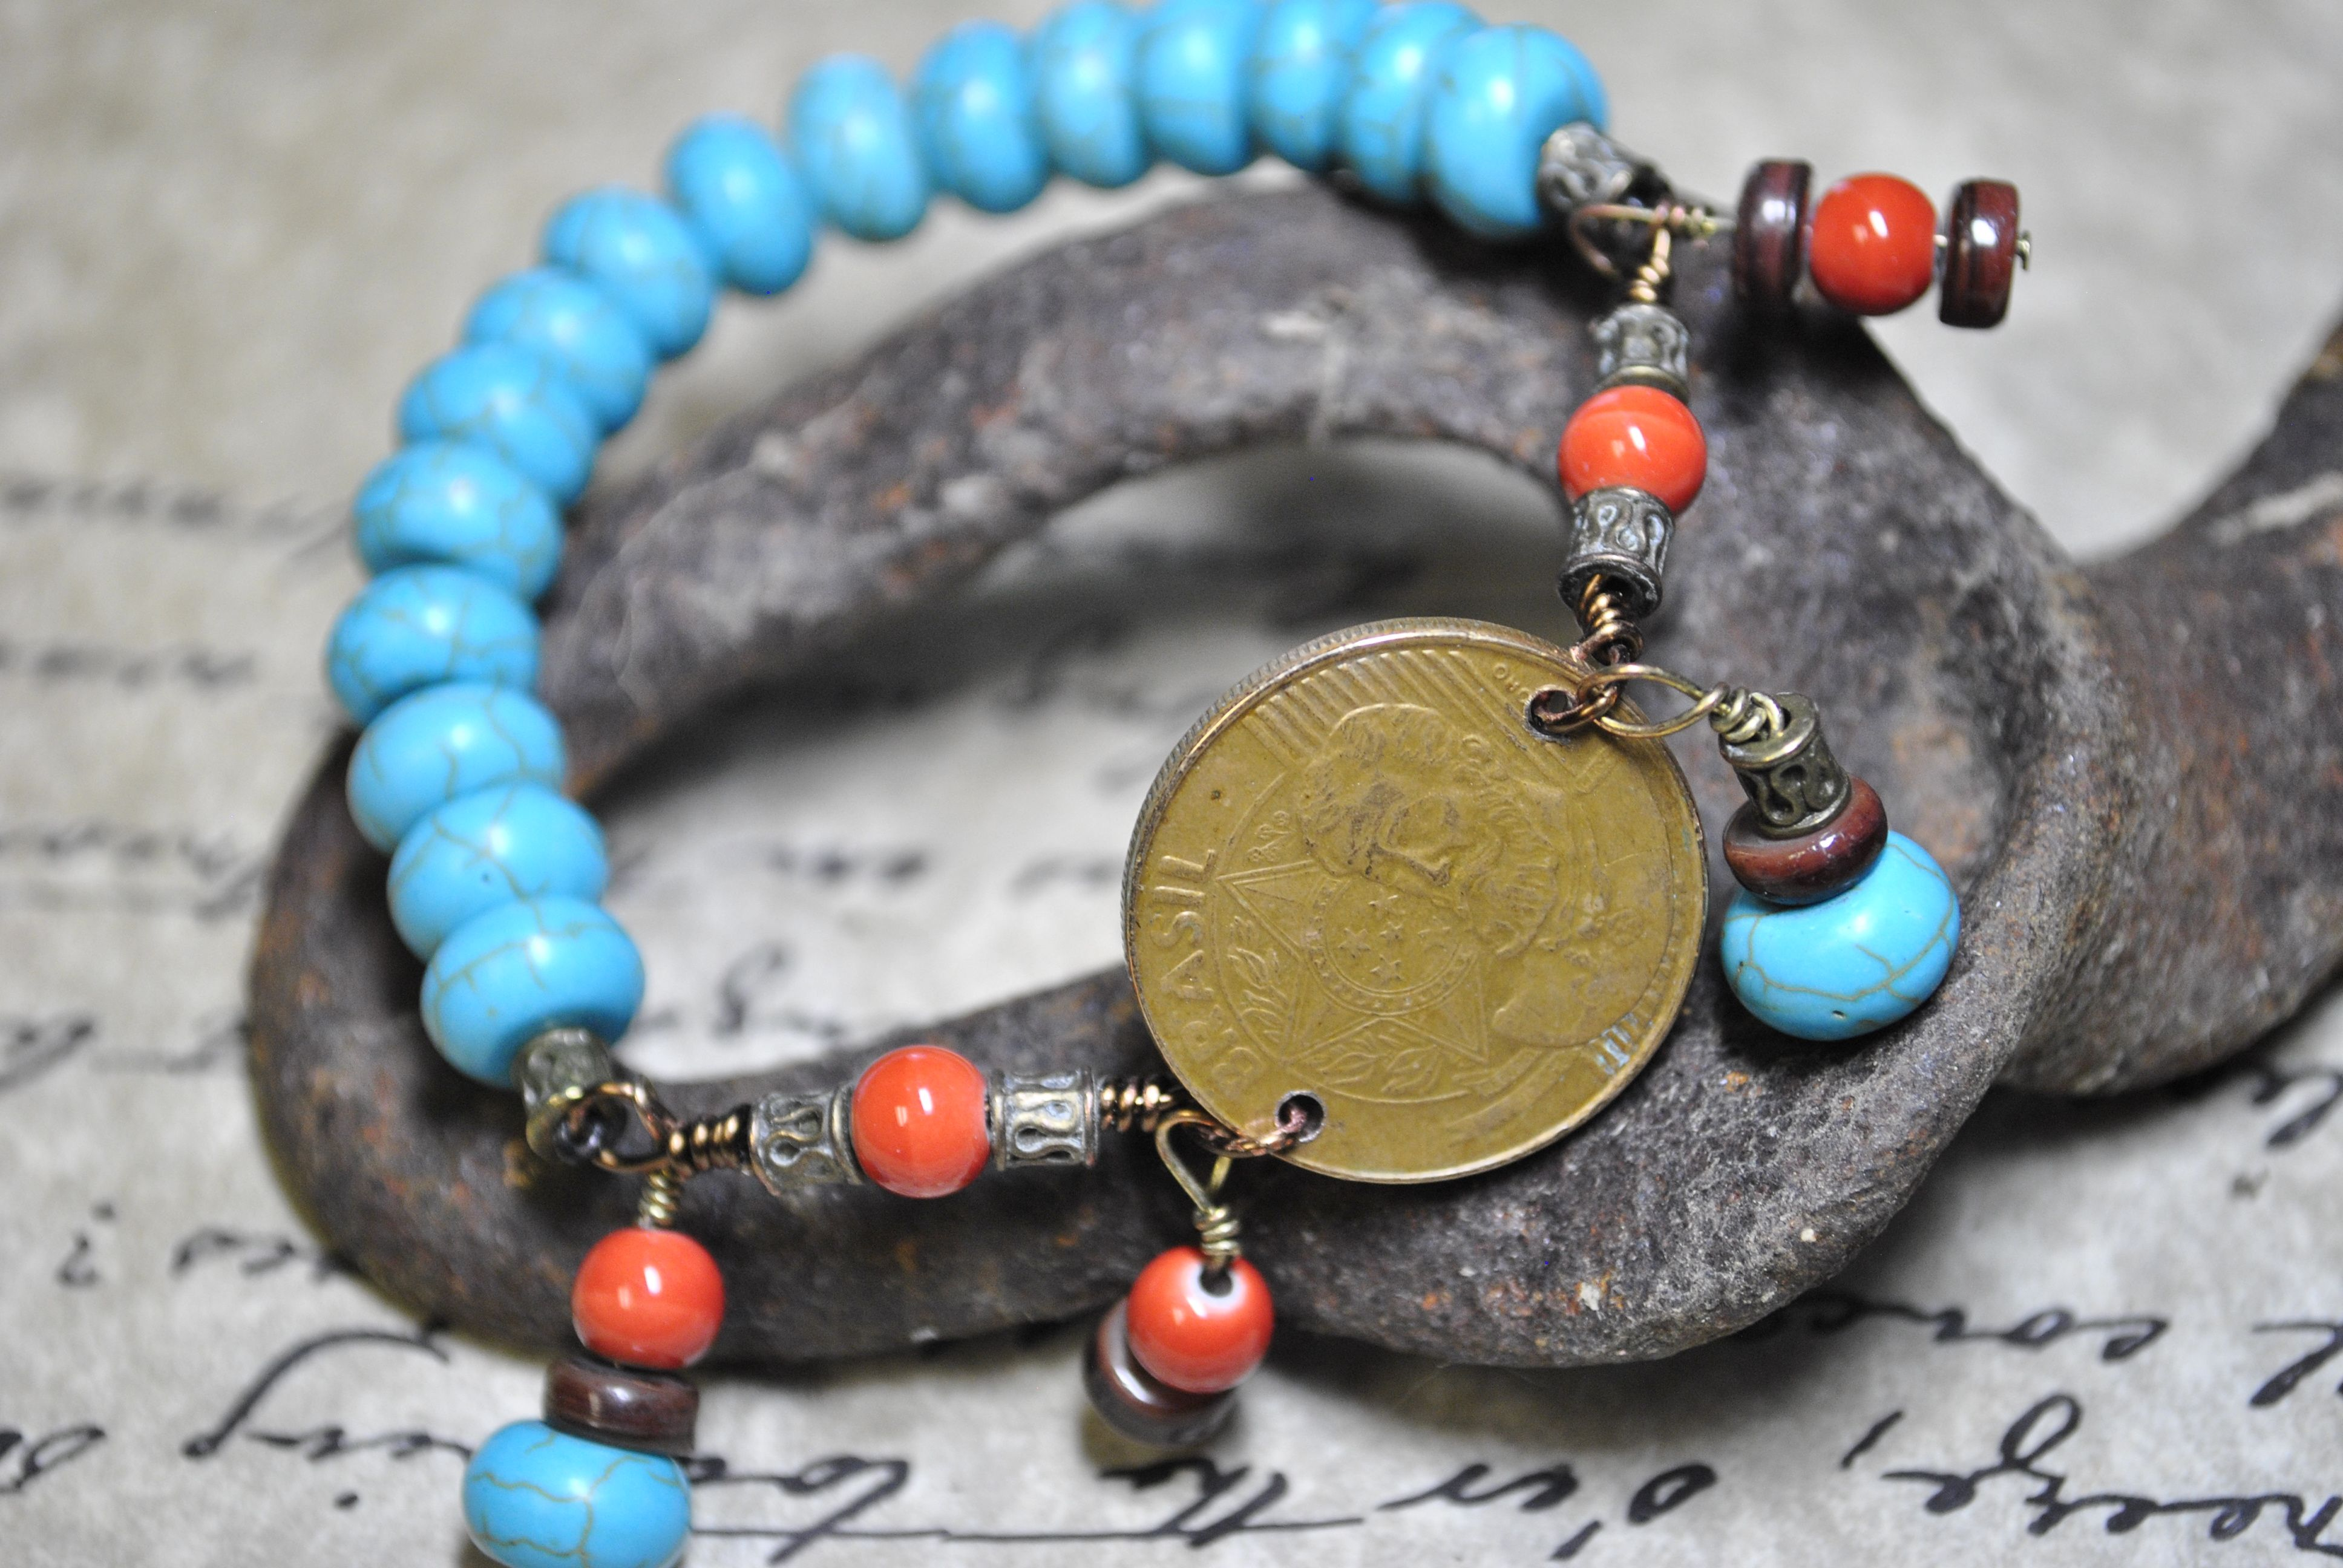 Coin bracelet with turquoise and coral color beads.  This bracelet is shown with a coin from Brazil.  This looks great worn with several other bead bracelets for a more layered BOHO look.